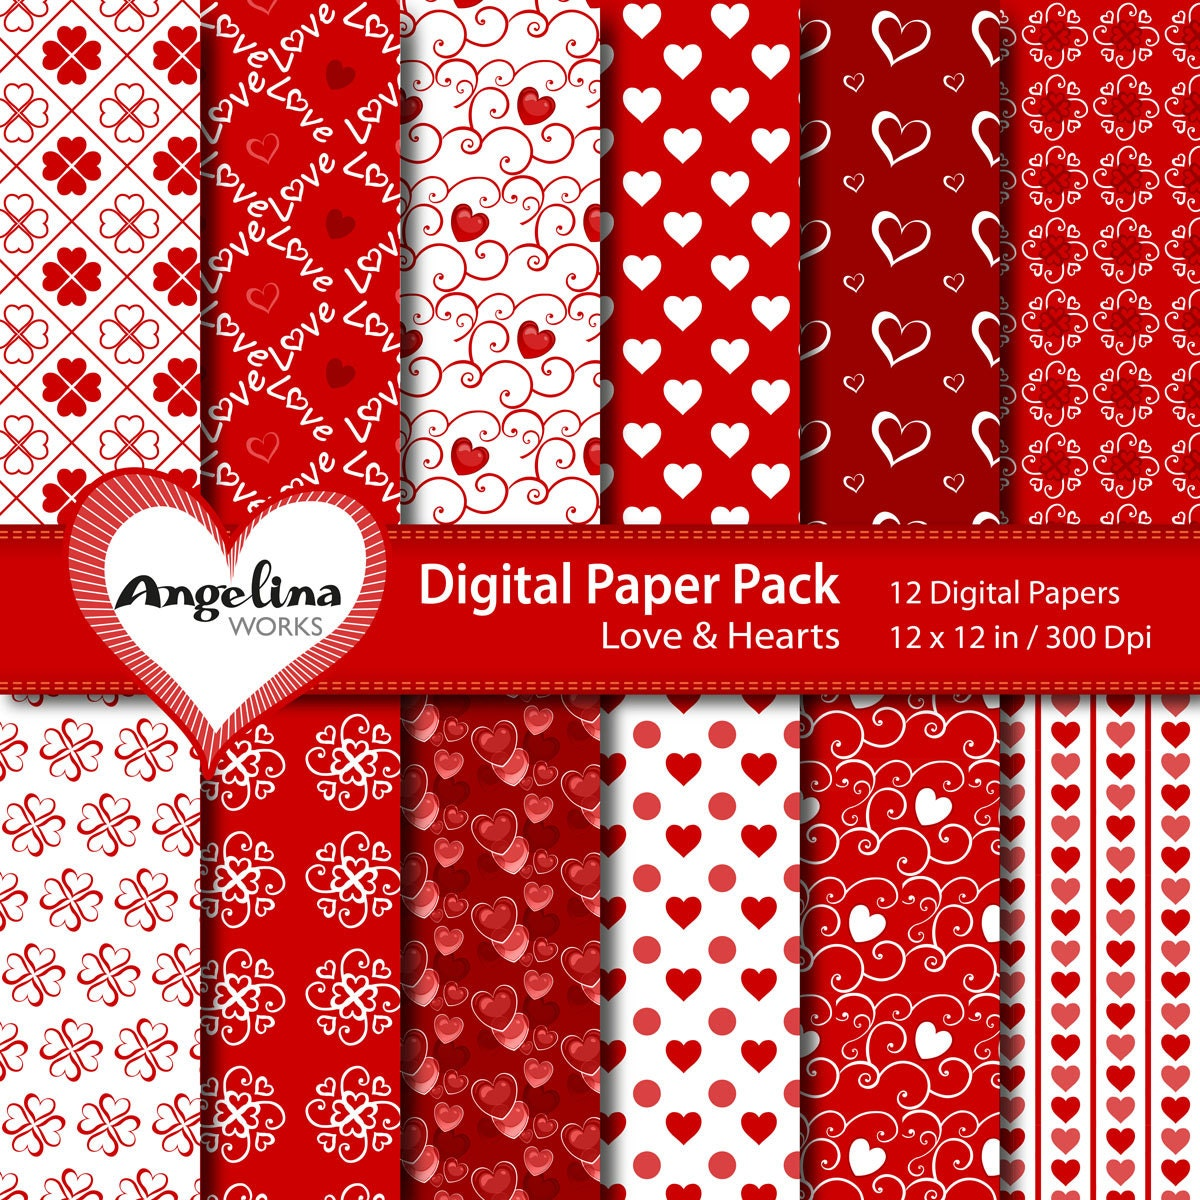 12 Digital Valentine Love Scrapbook Paper Pack for invites, card making, digital scrapbooking, wallpapers